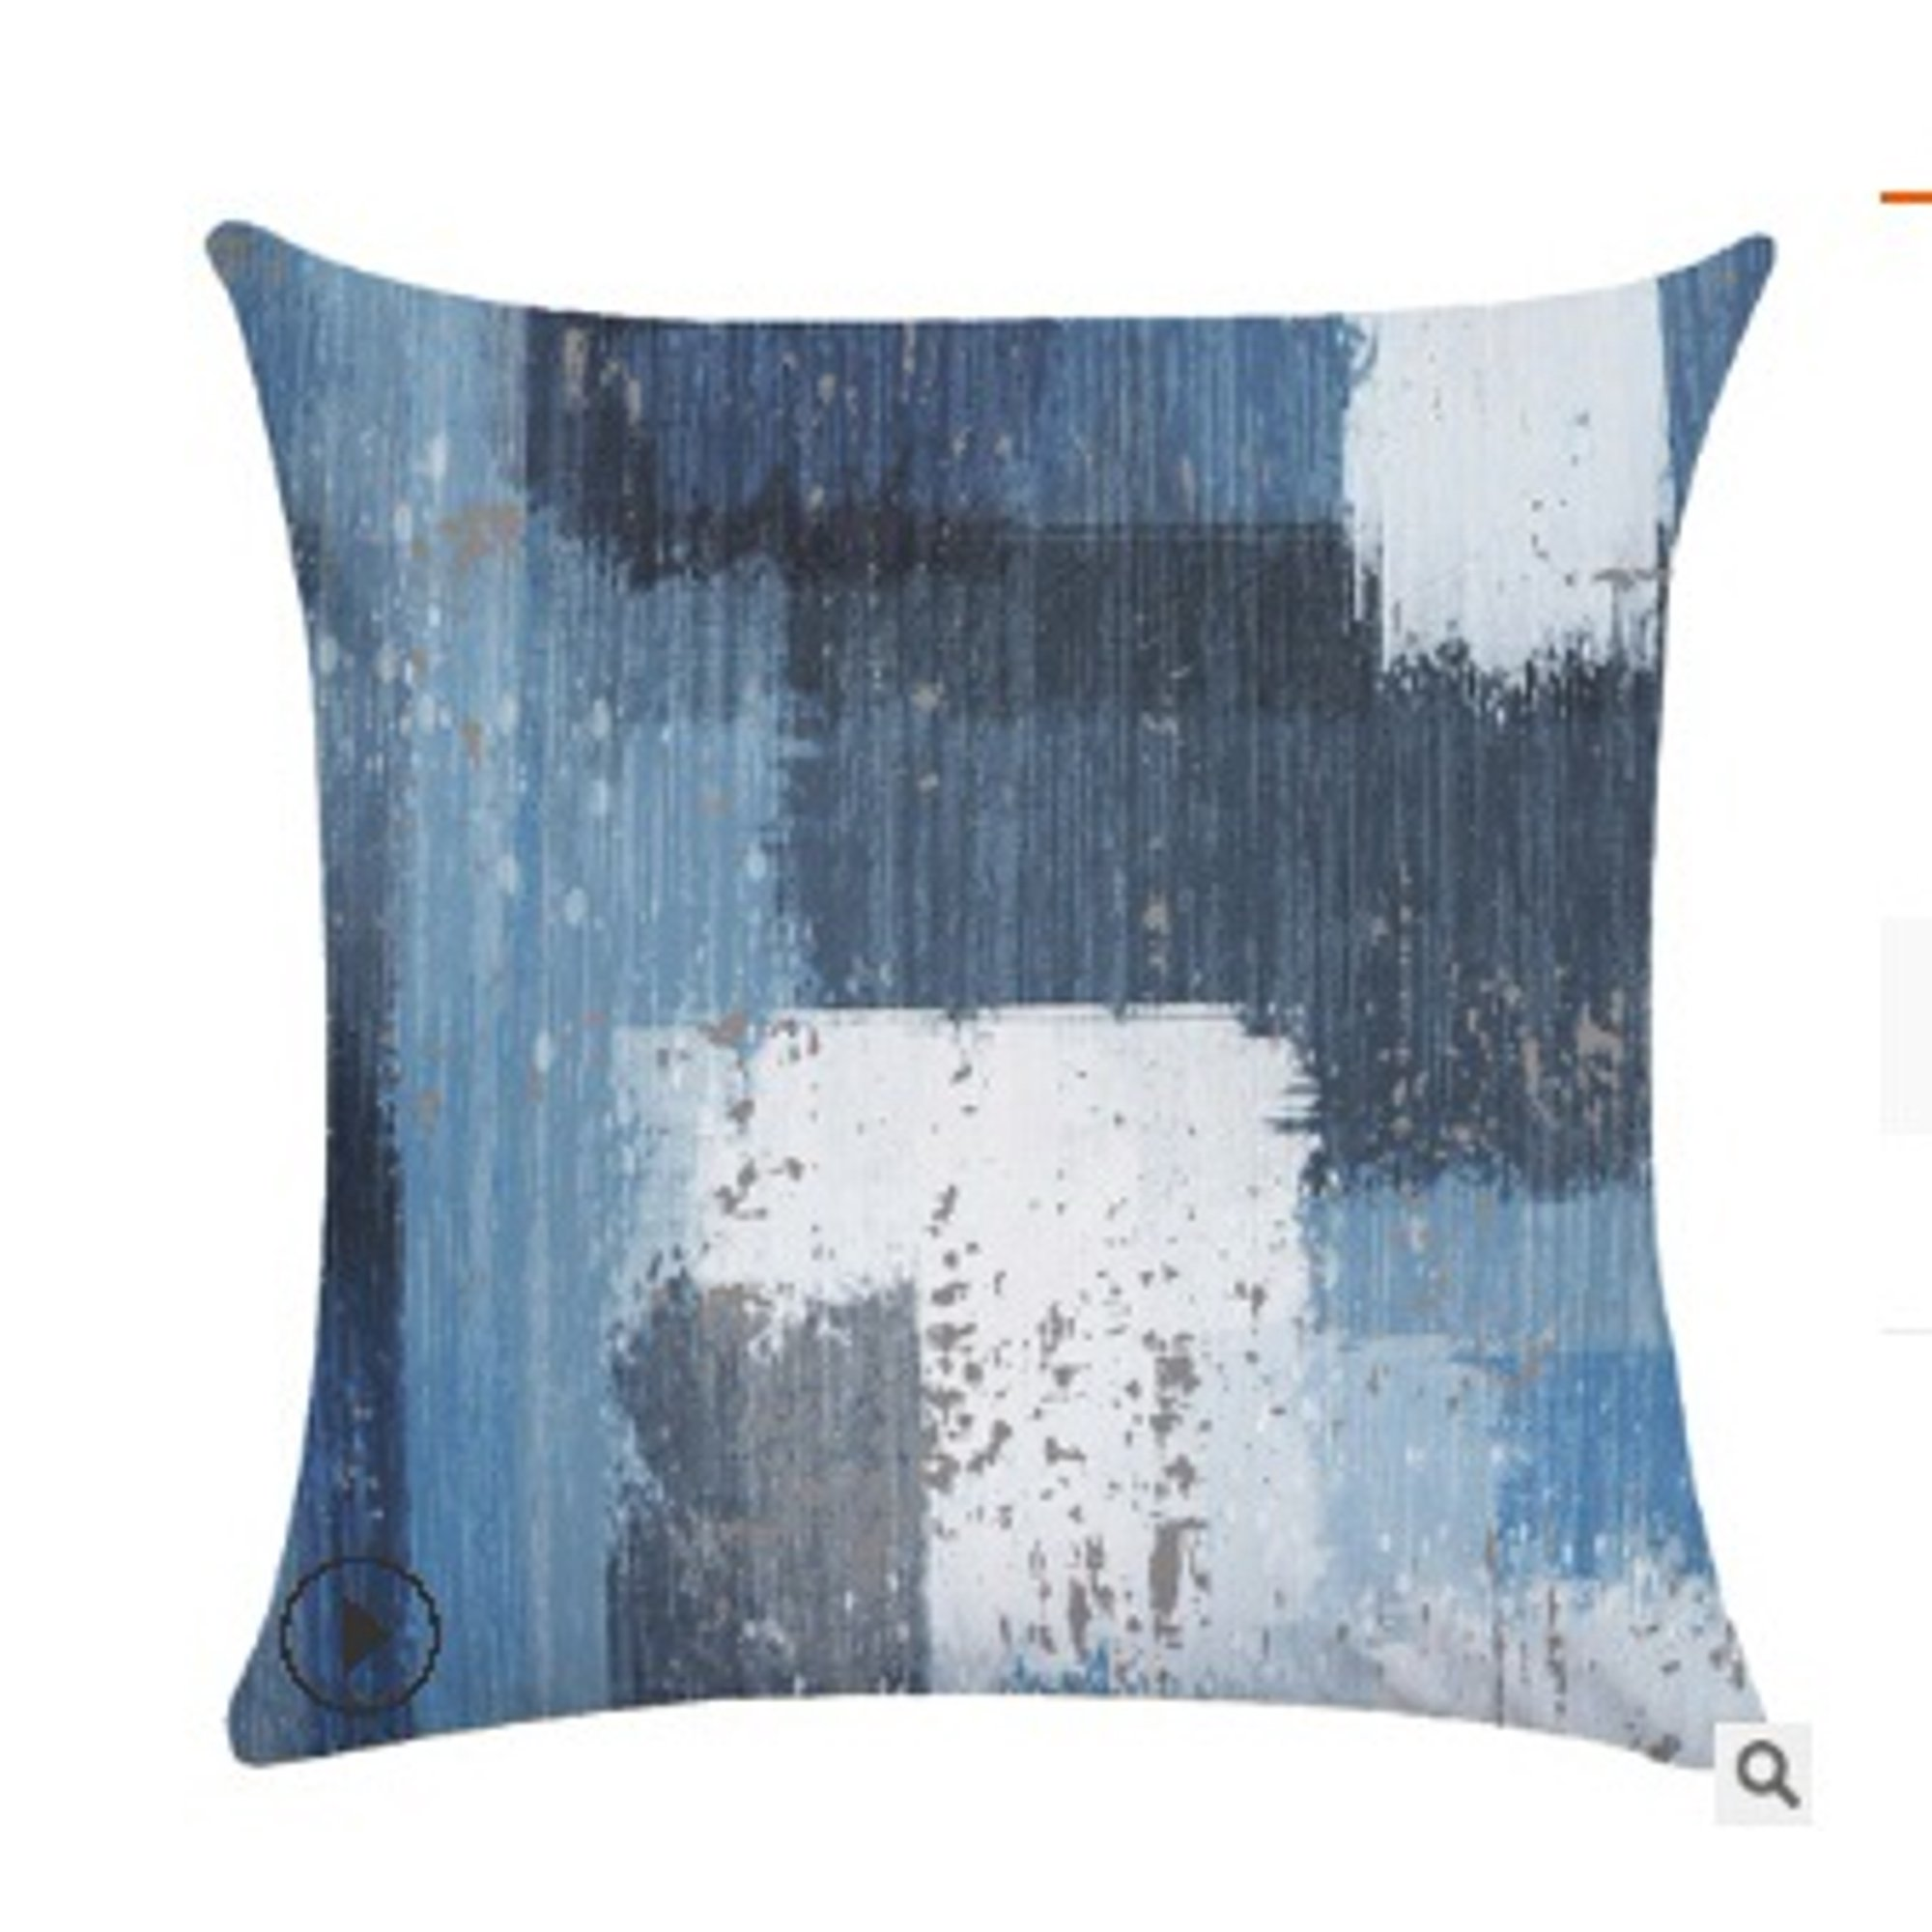 Throw Pillow Cover Abstract Art Retro Old Fashion Square Pillow Case Cushion Cover For Sofa Couch Walmart Canada